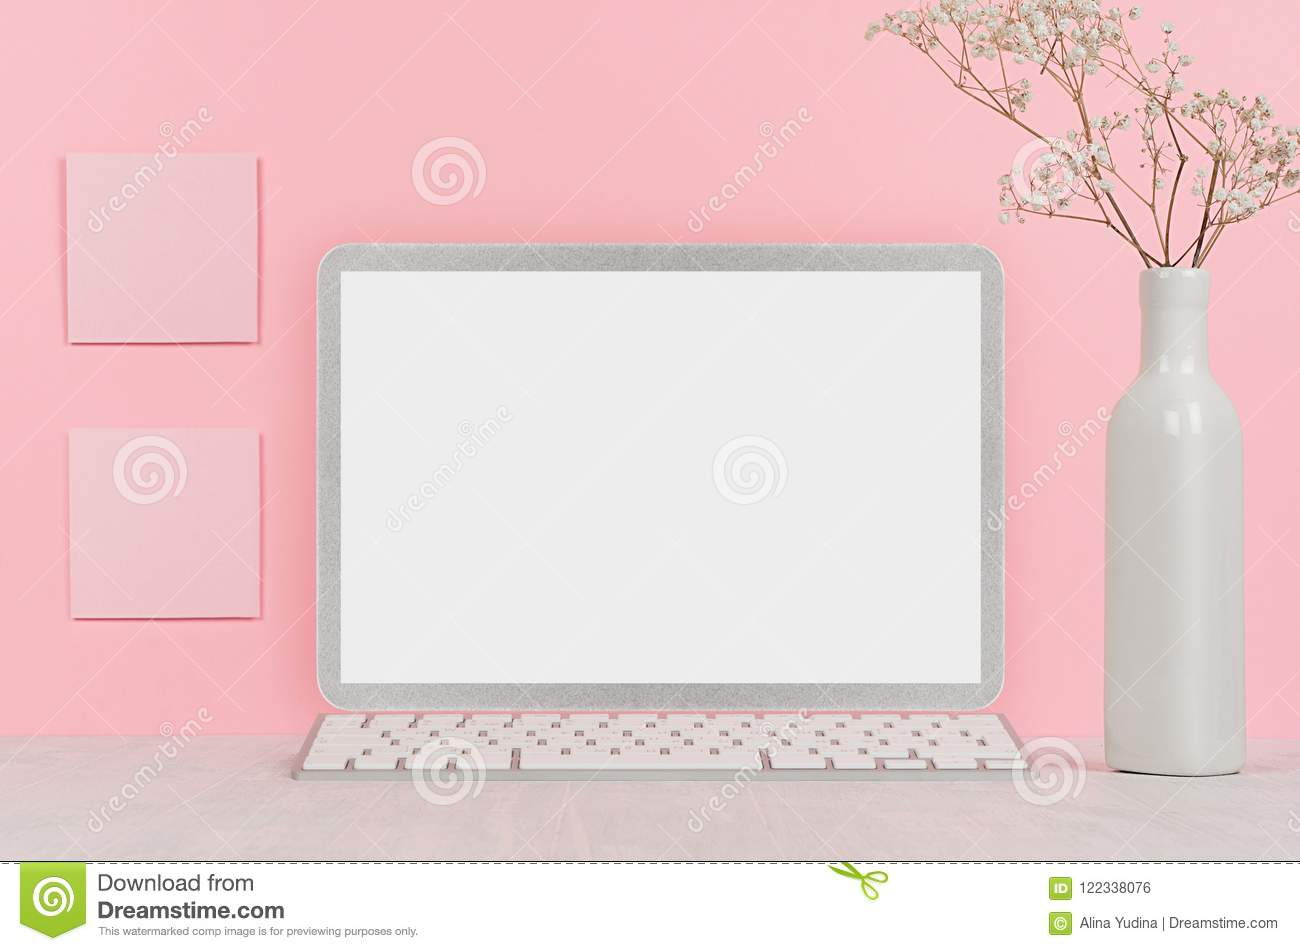 Back to school background for girl`s - white stationery, blank laptop computer and stickers on soft pink wall and white wood desk.